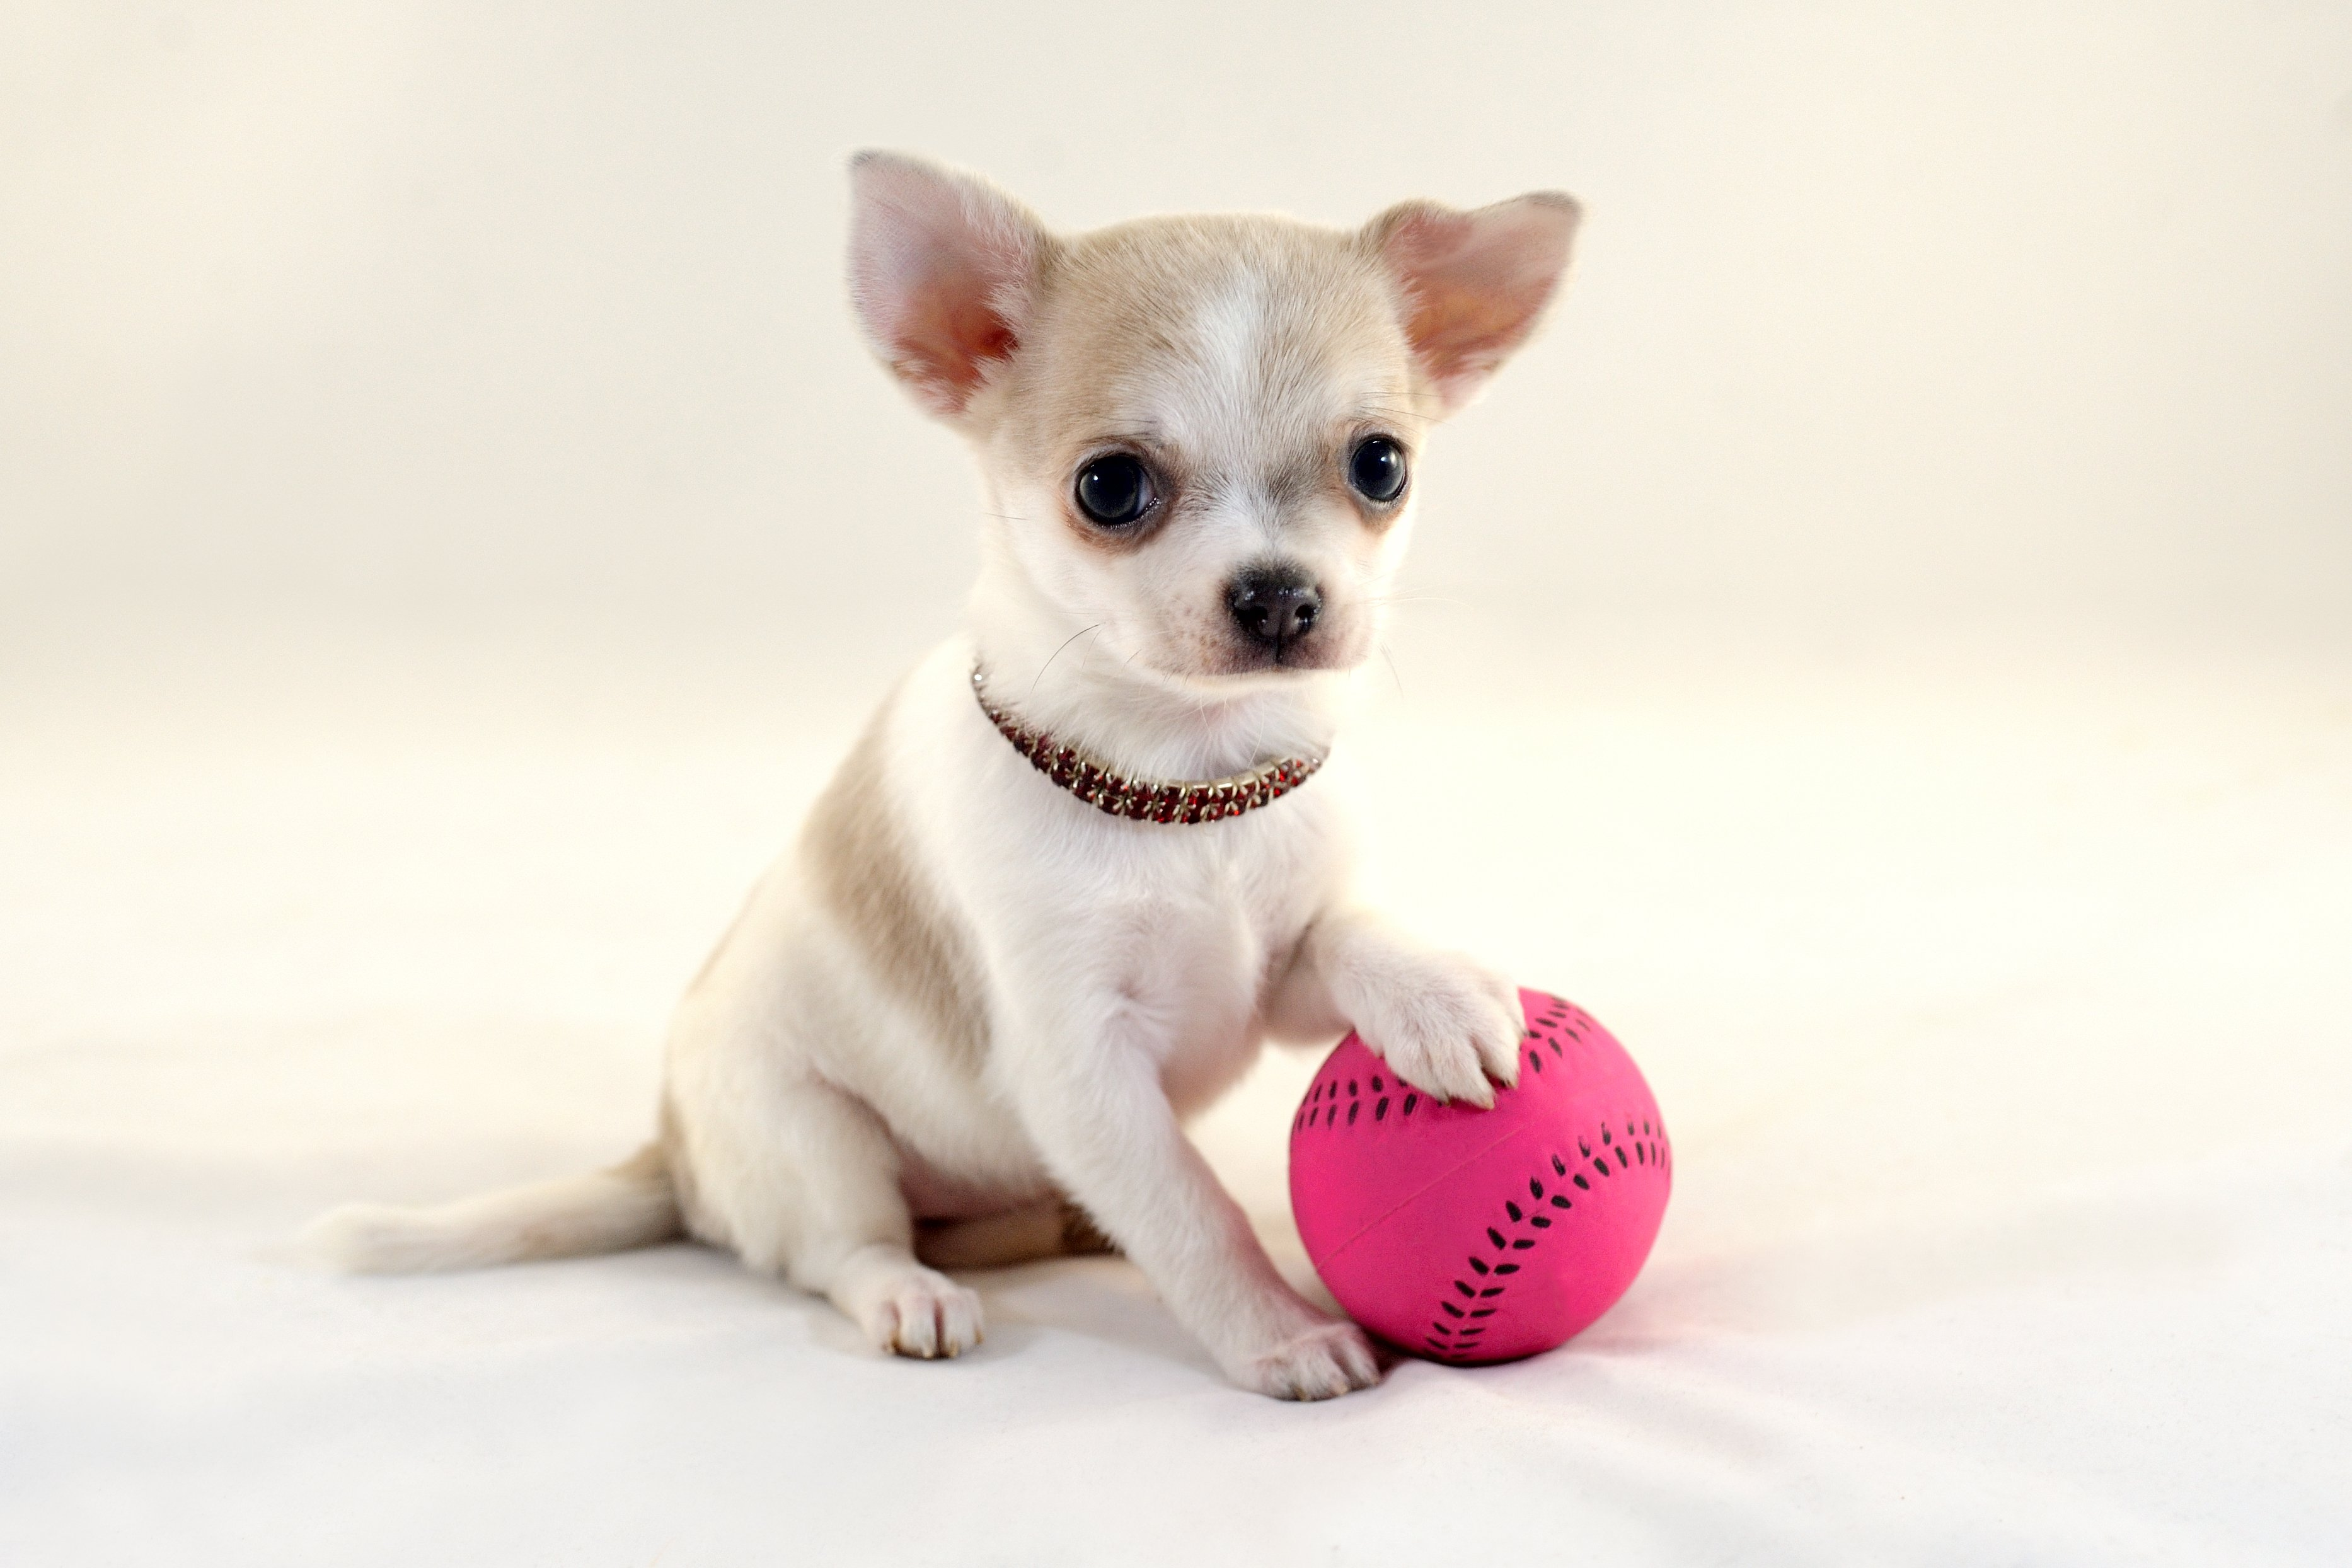 Short-haired white color miniature Chihuahua puppy with a pink tennis ball on white background | Photo: Shutterstock